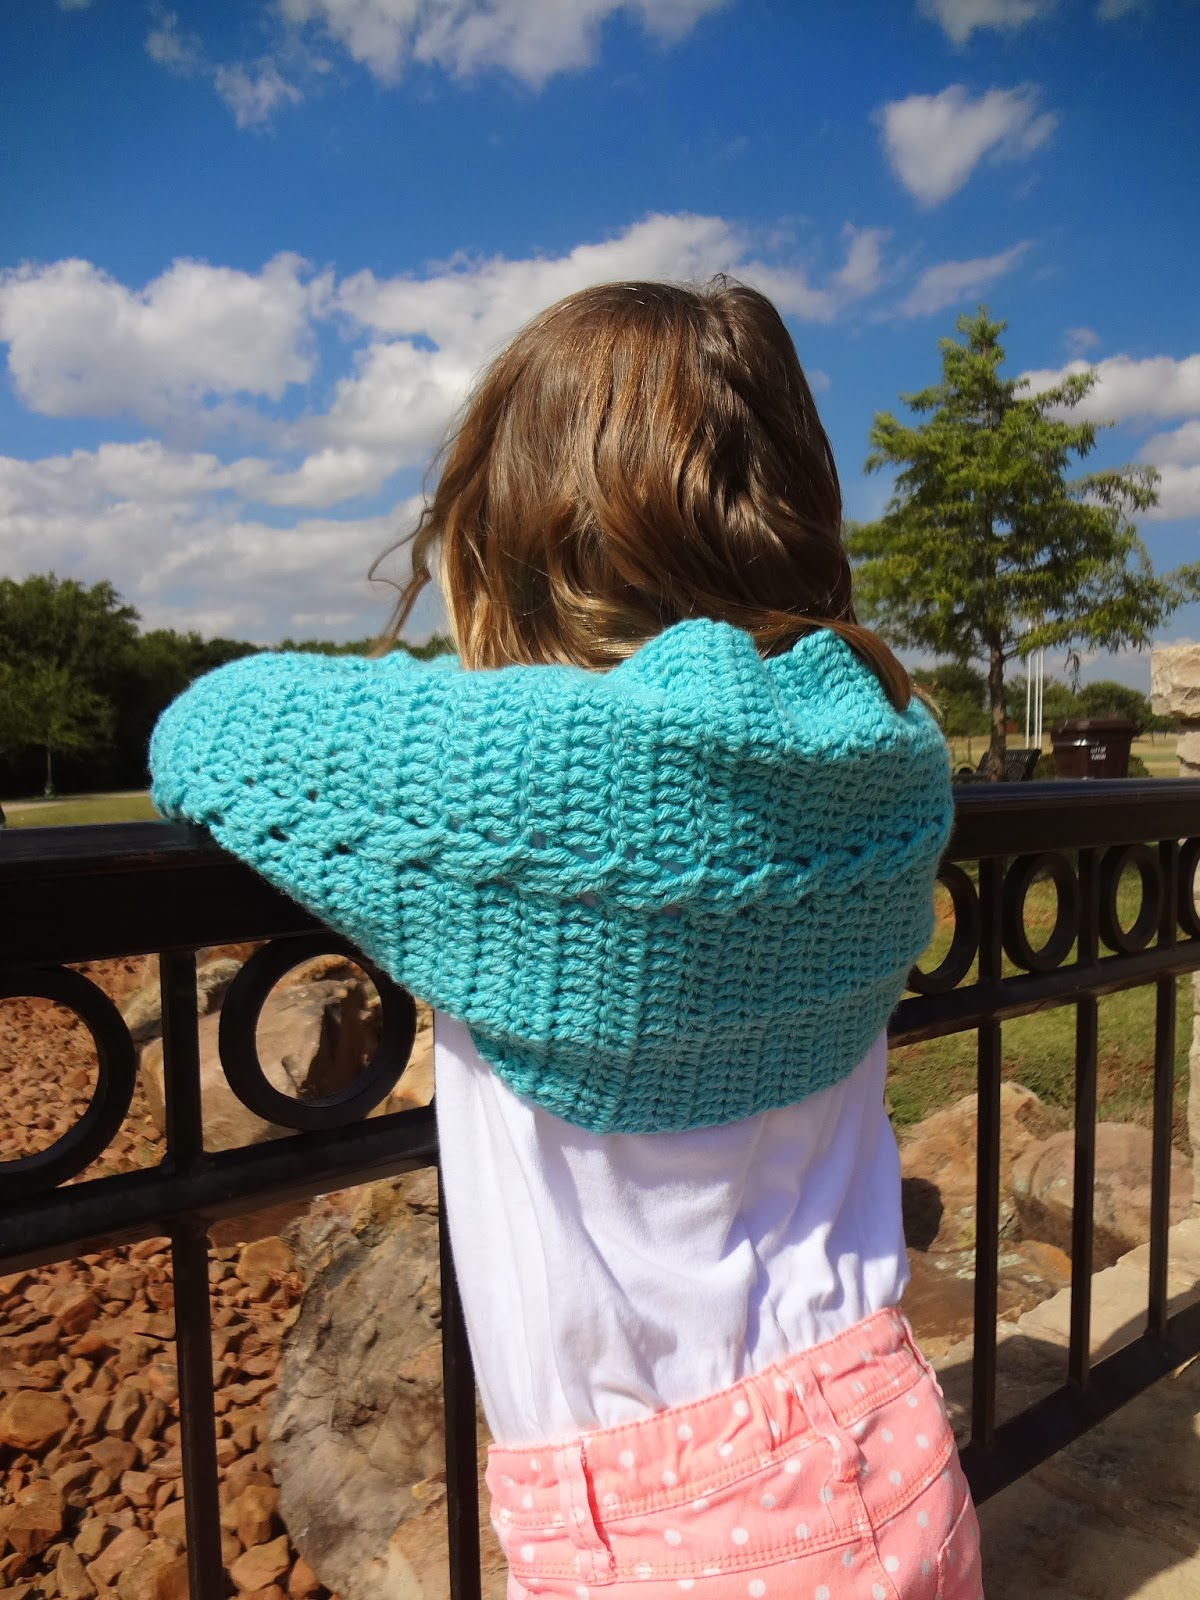 Girl wearing a turquoise cabled crochet shrug and standing in front of an iron railing. Free crochet pattern.